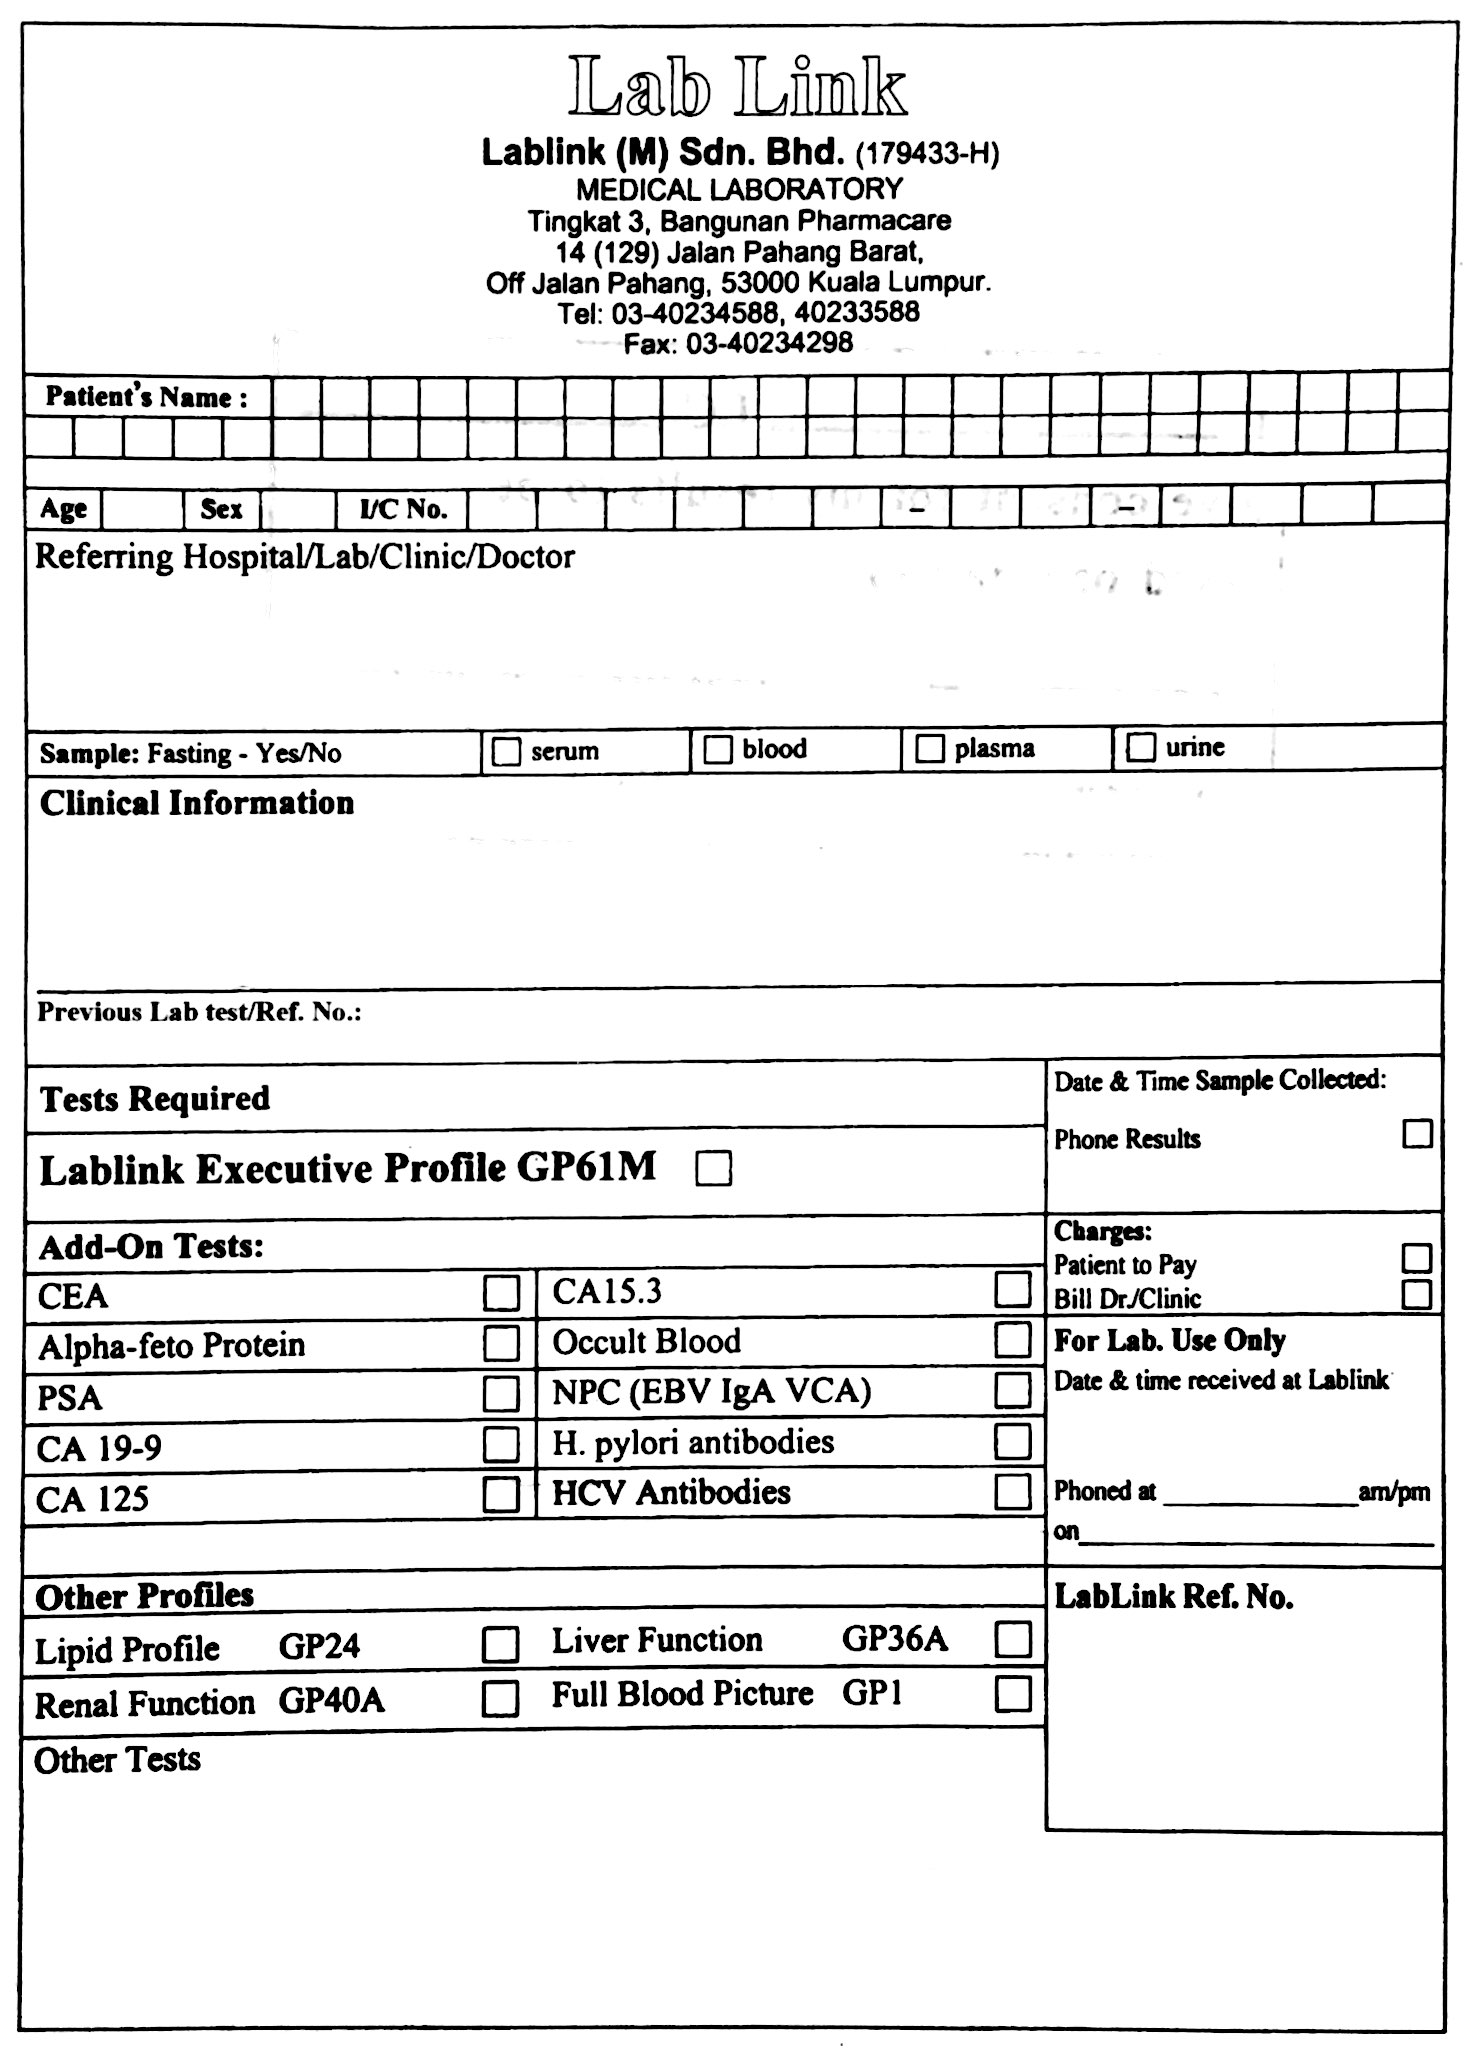 Lablink Request Form